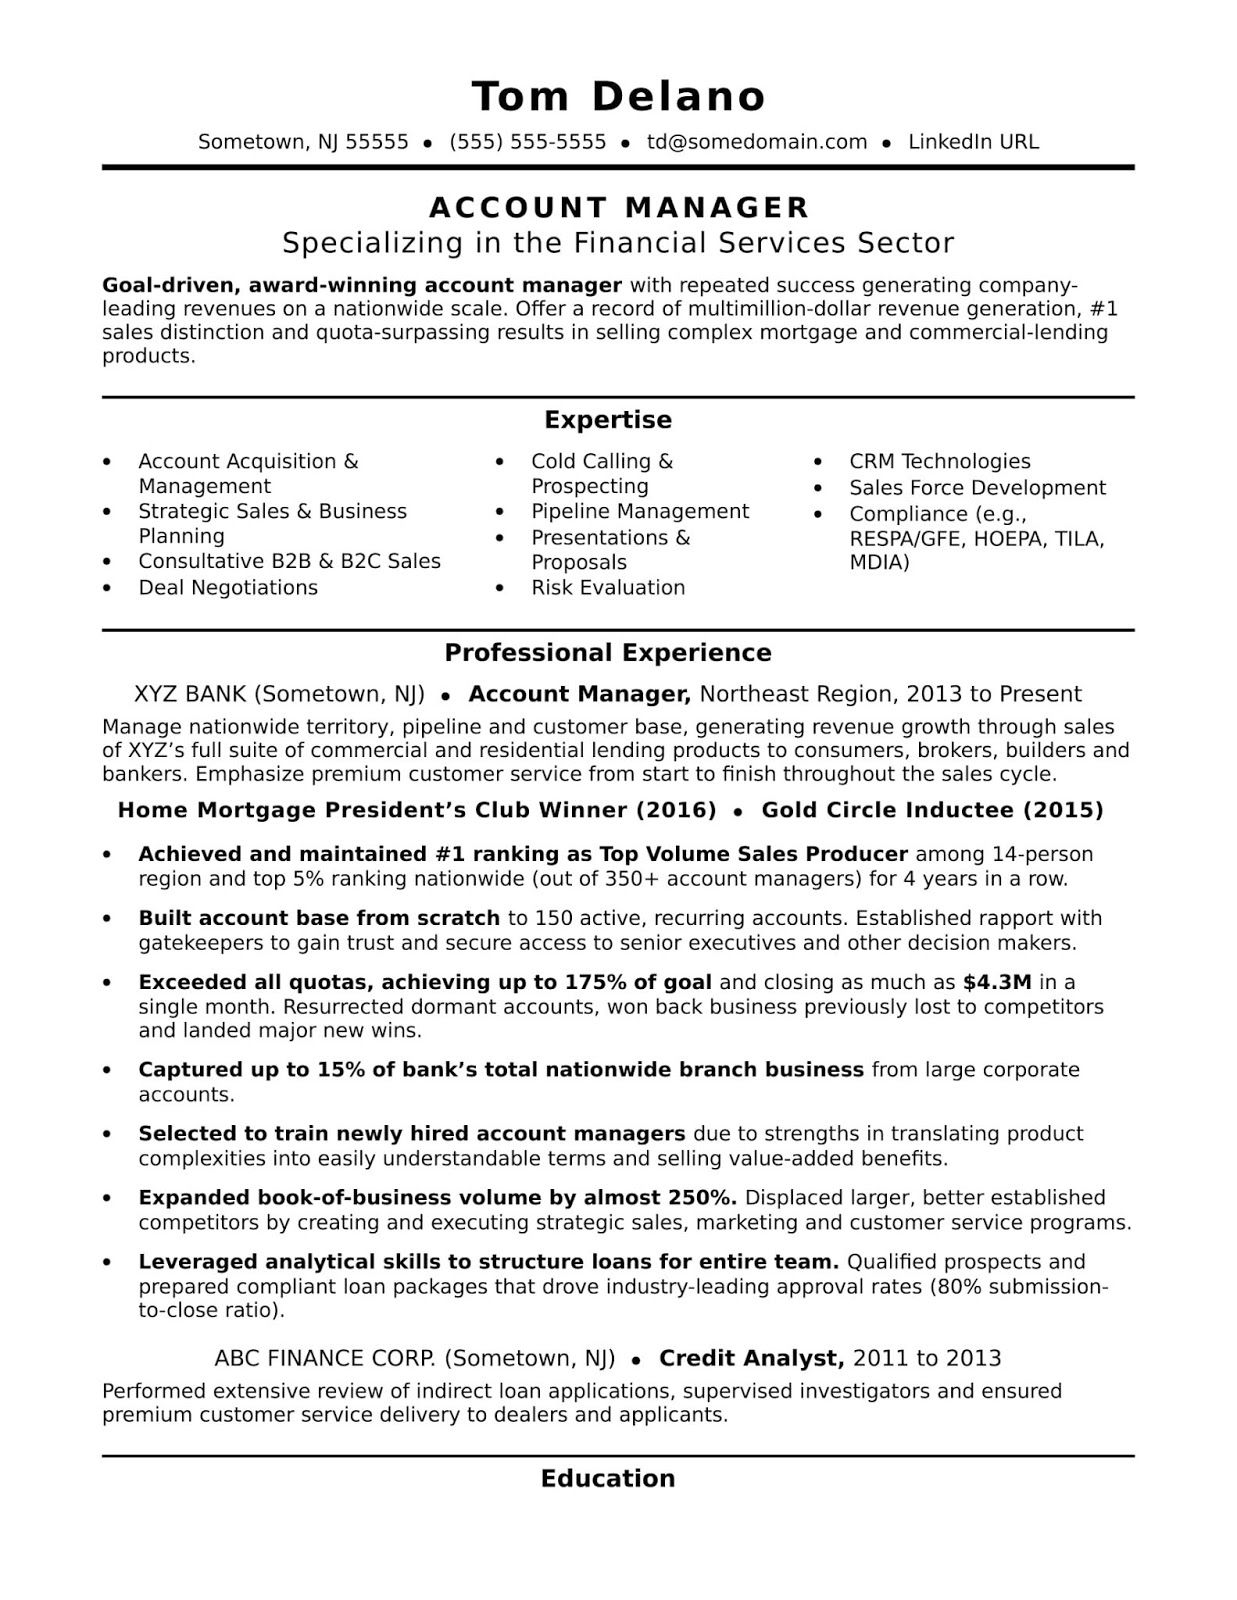 Account Executive Sample Resume Account Manager Sample Resume Account Executive Resume Examples Key Ac Accounting Manager Manager Resume Job Resume Template